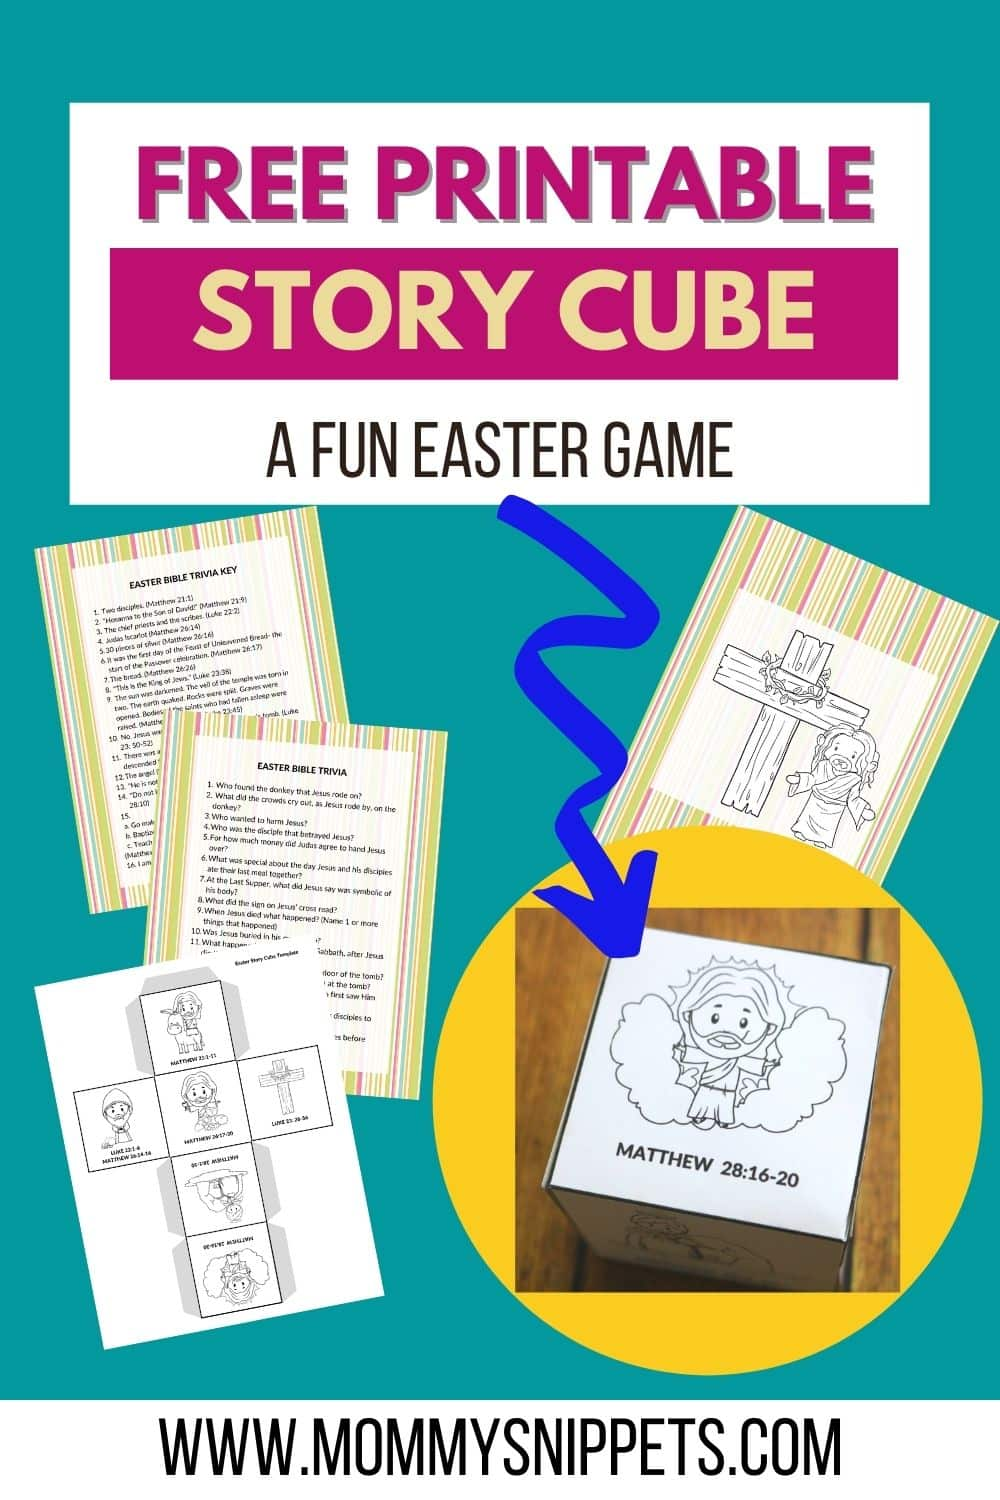 The Best Easter Story for Kids Story Cube Activity -Free Printable Easter Game